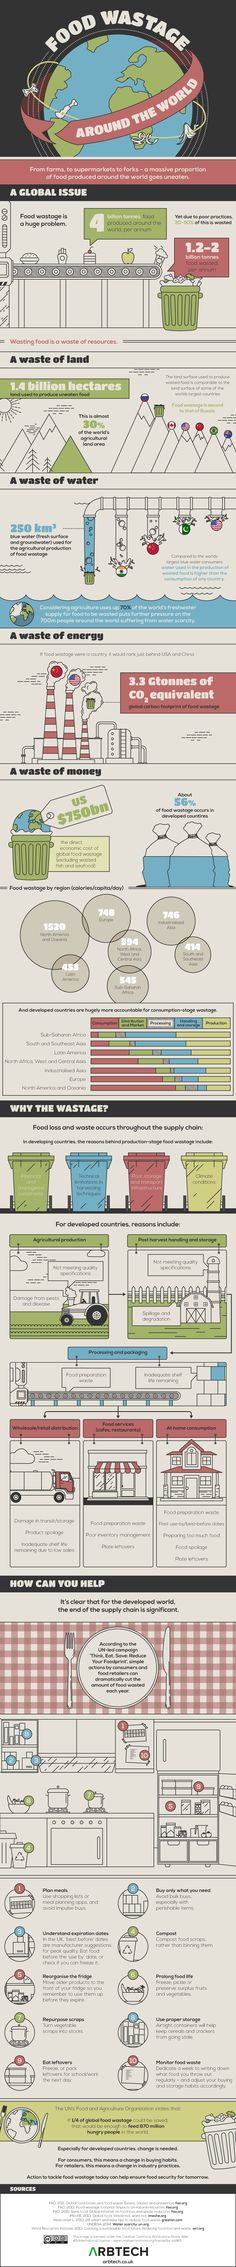 Food wastage around the world. (More design inspiration at www.aldenchong.com)